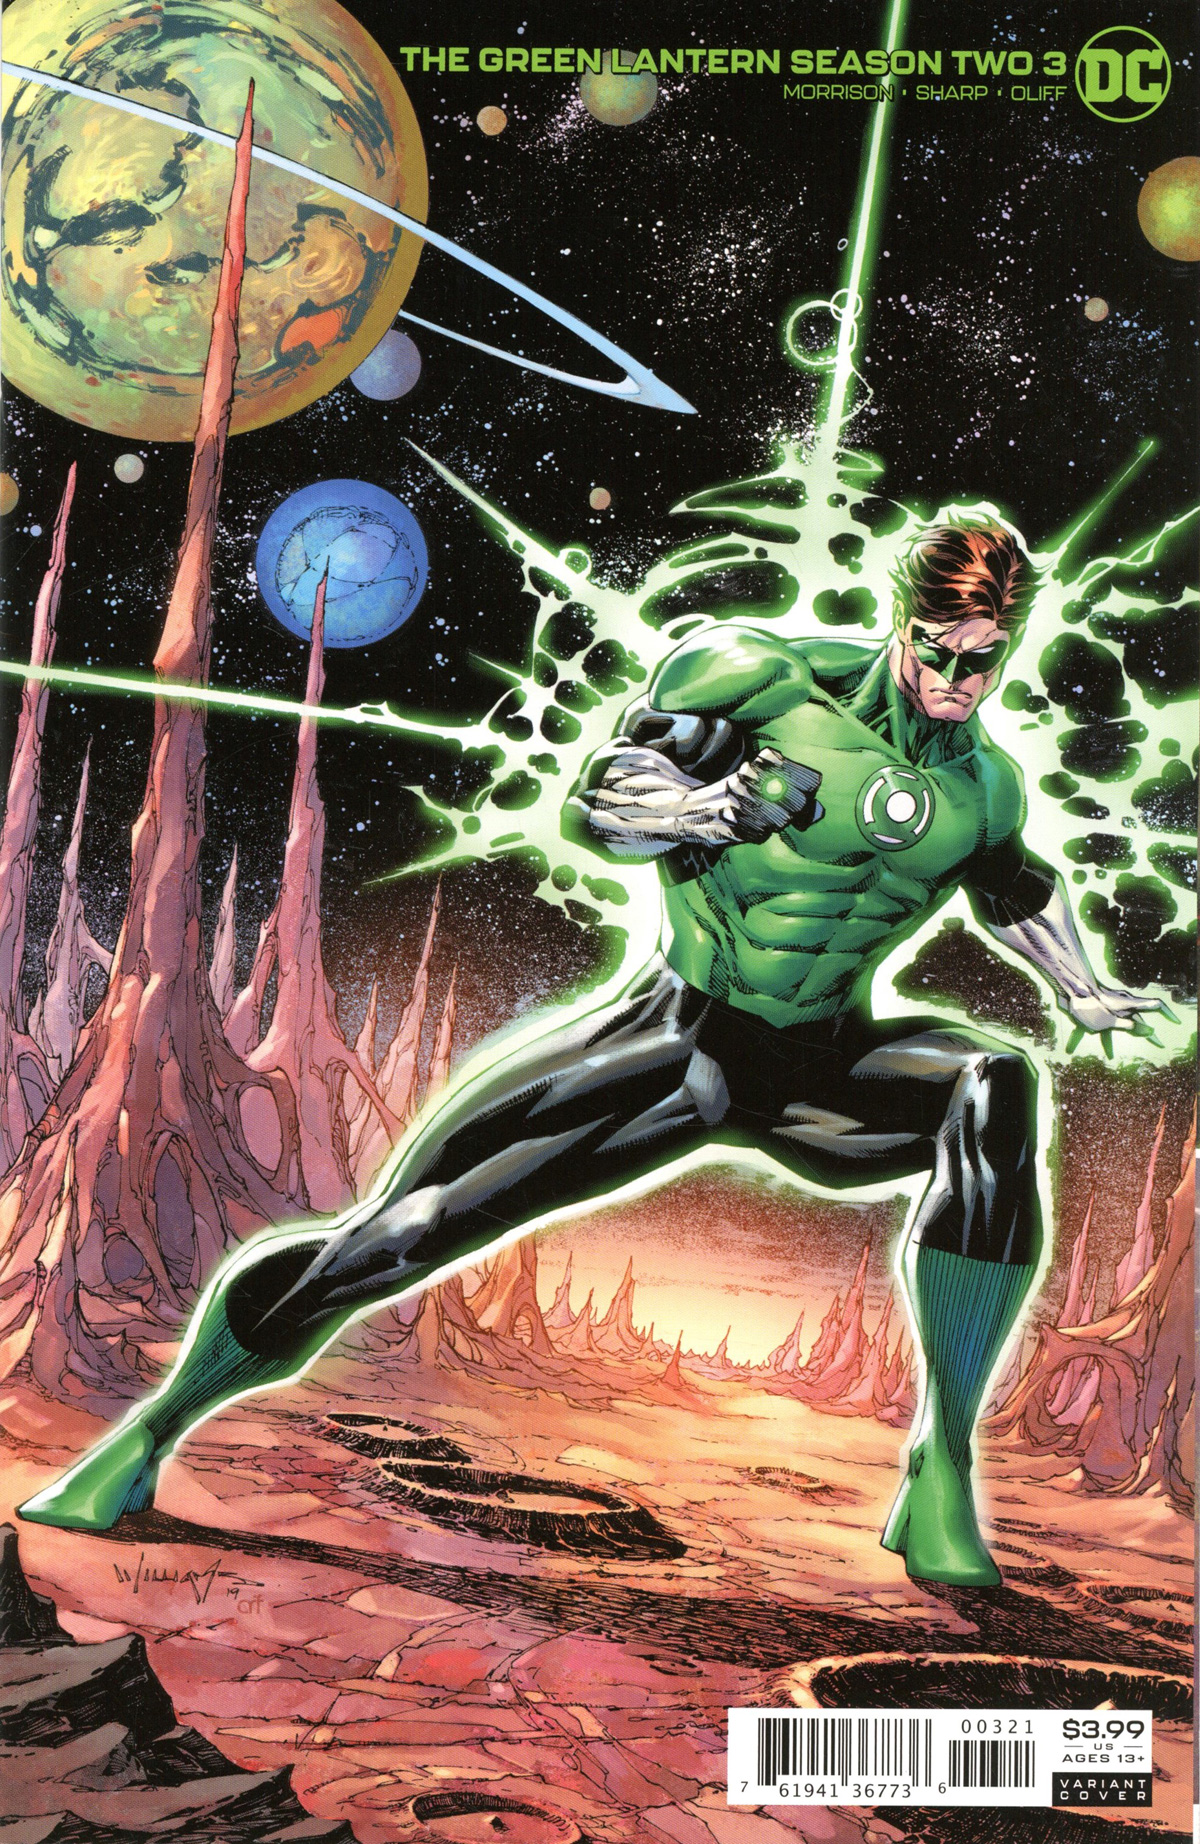 Green Lantern Vol 6 Season 2 #3 Cover B Variant Scott Wiliams Cover